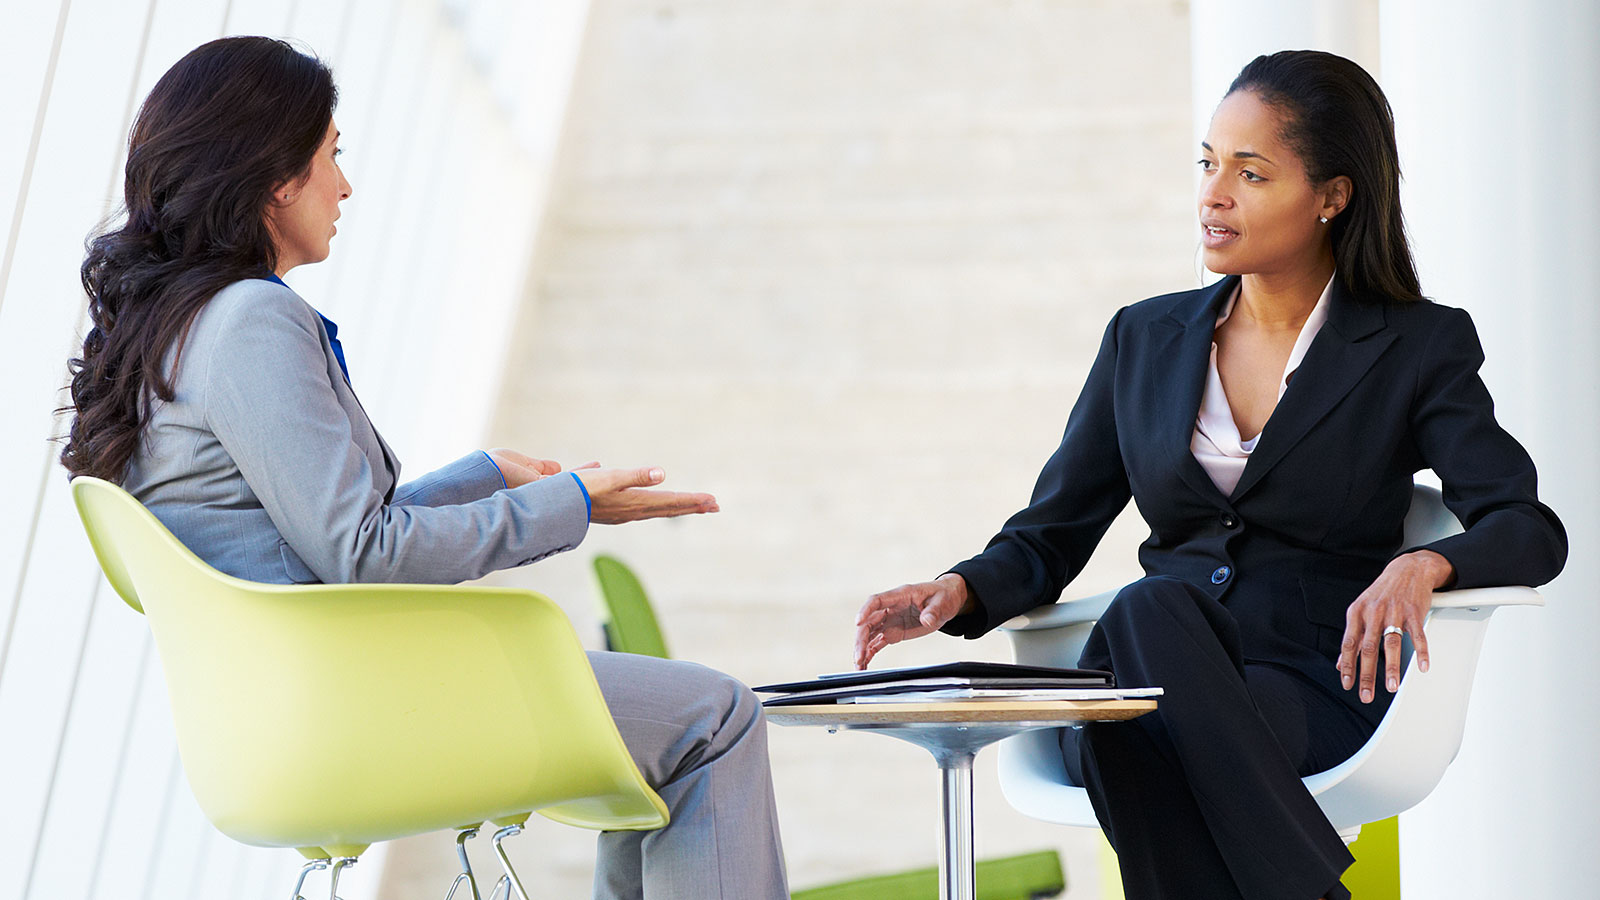 To avoid rambling in interviews, do 1 thing before speaking